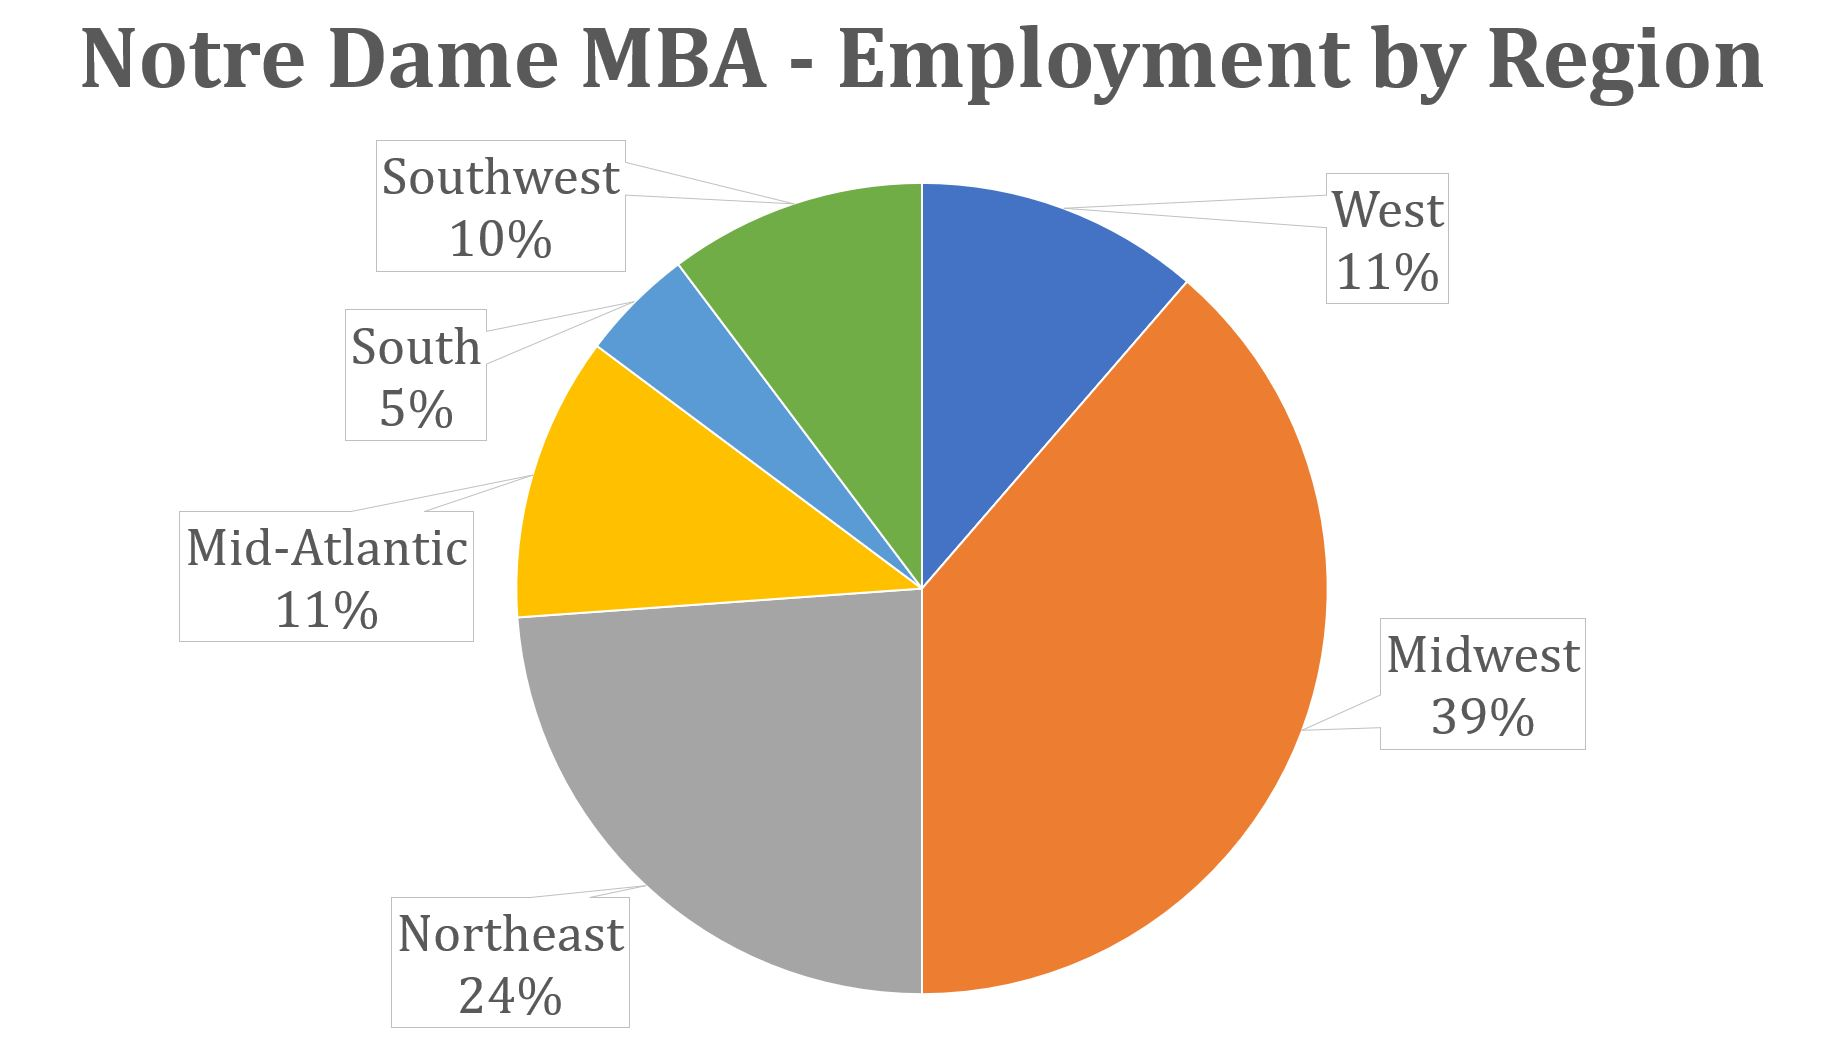 Notre Dame MBA - Employment by Region